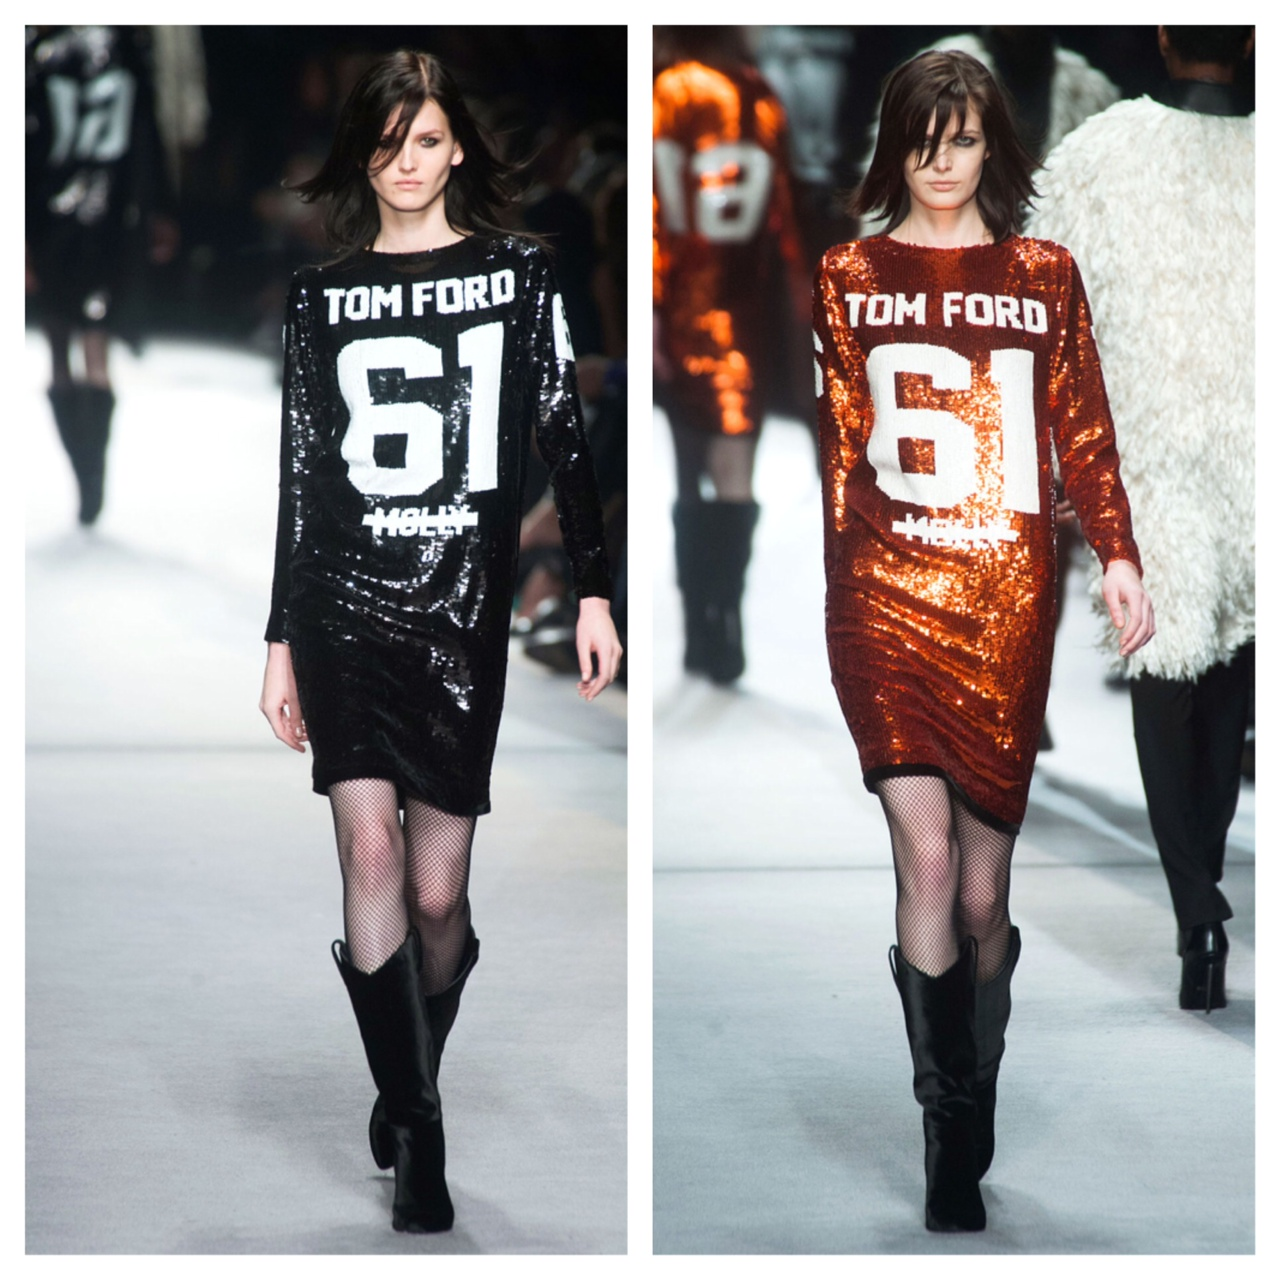 TOM FORD Fall Collection